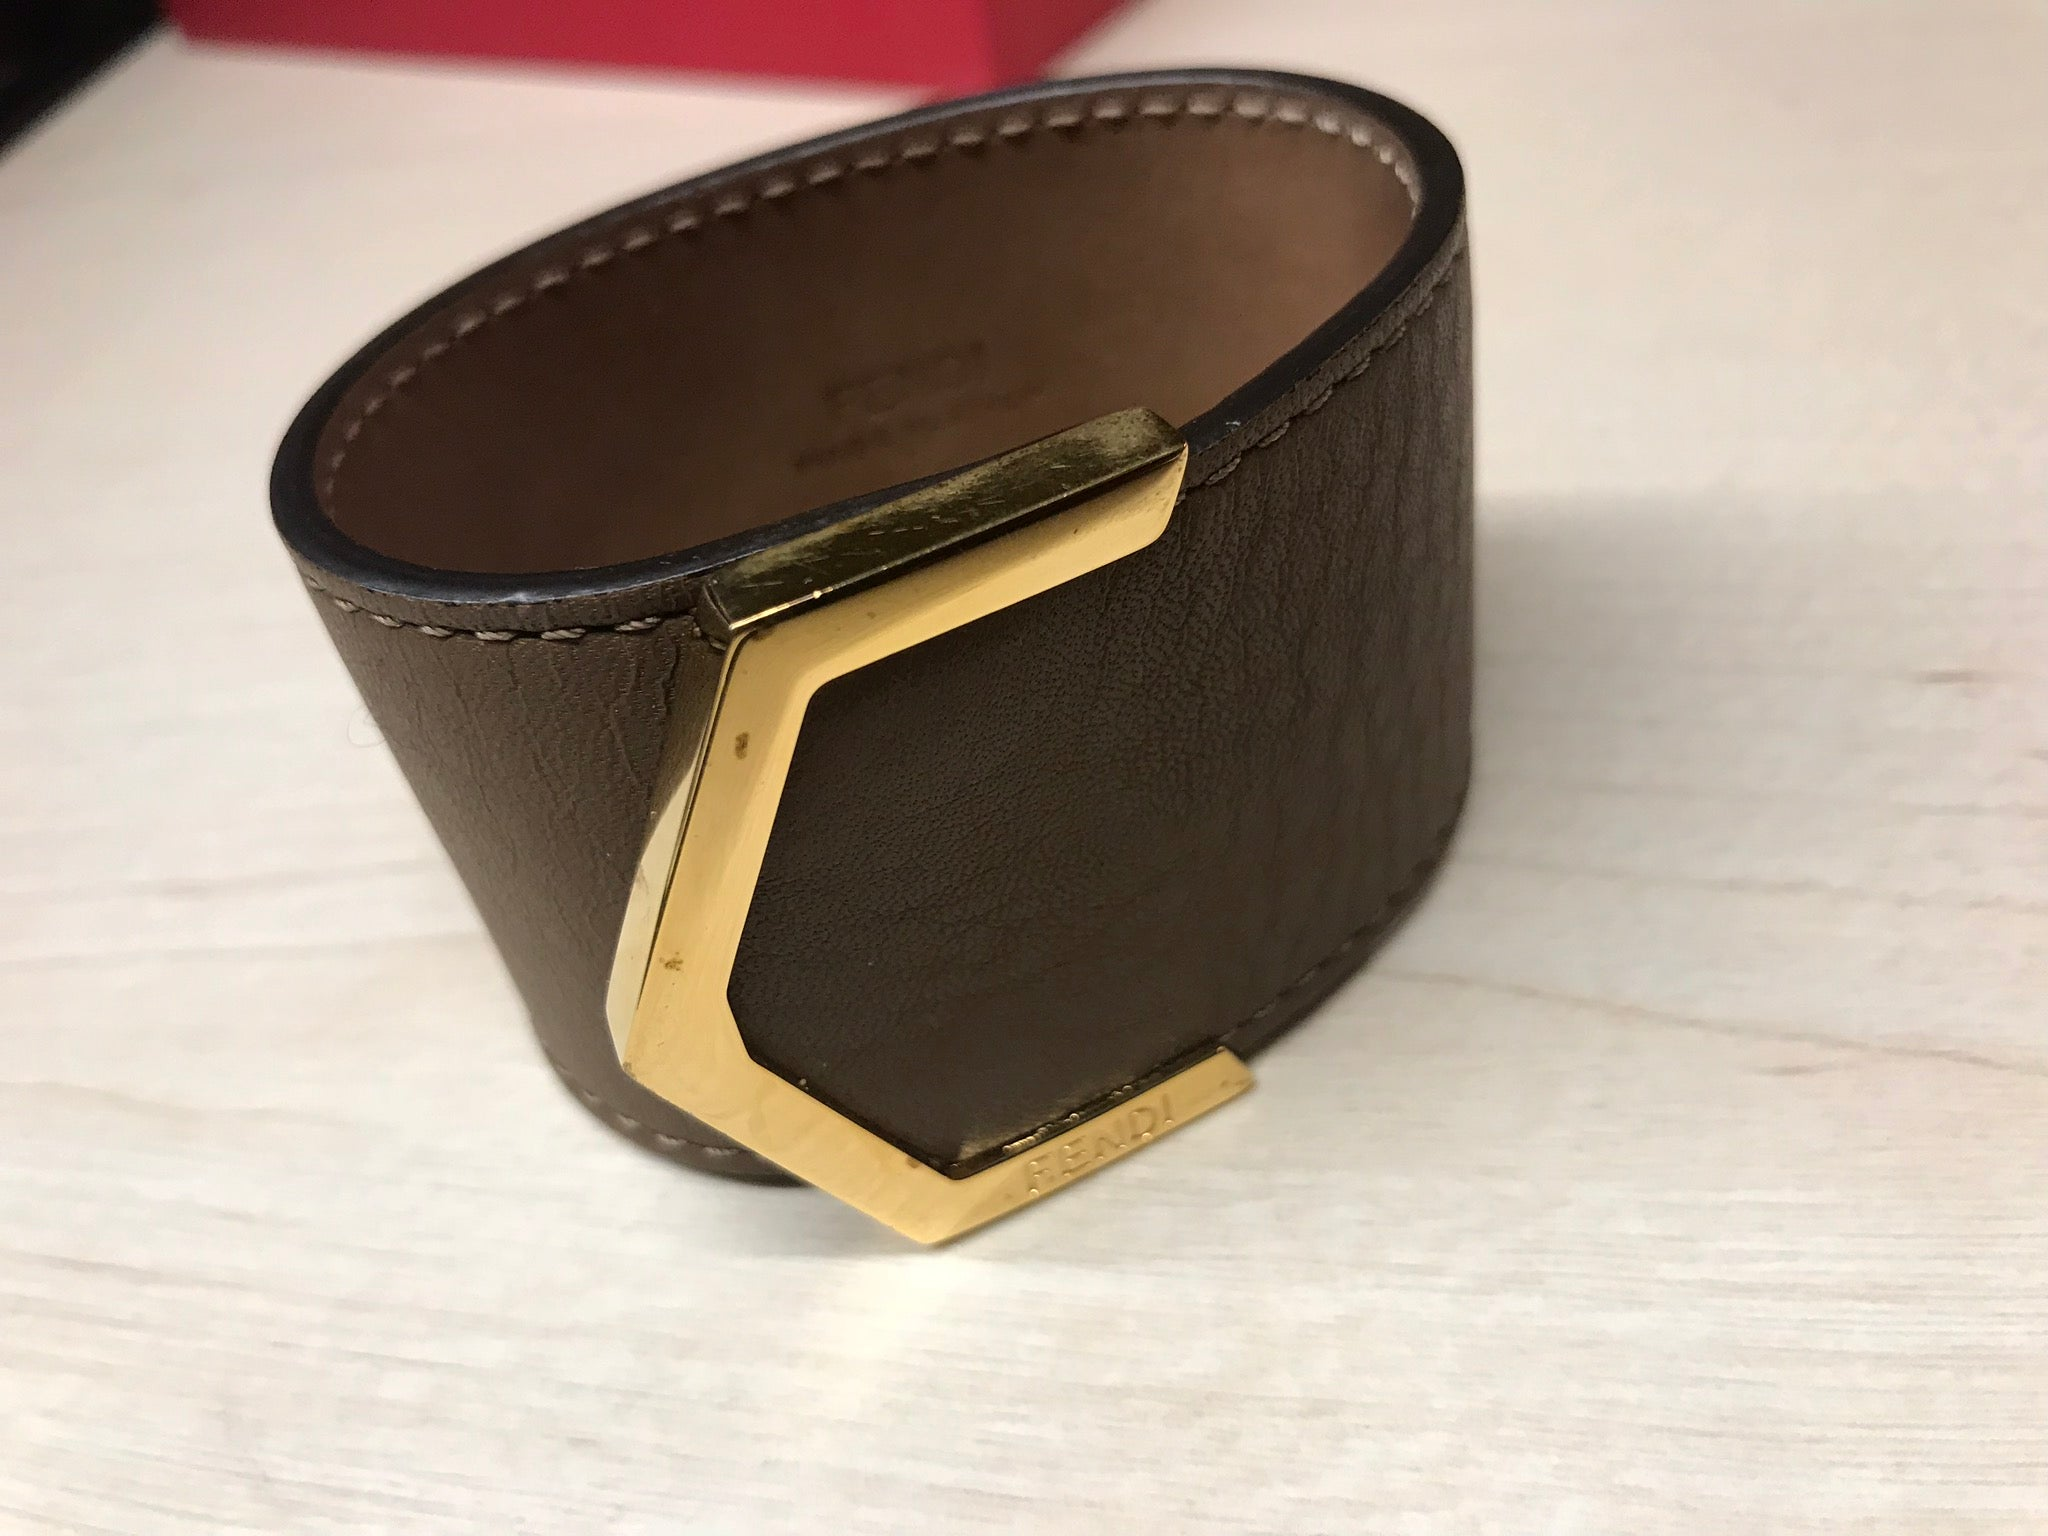 Fendi Bracelet - Iconics Preloved Luxury